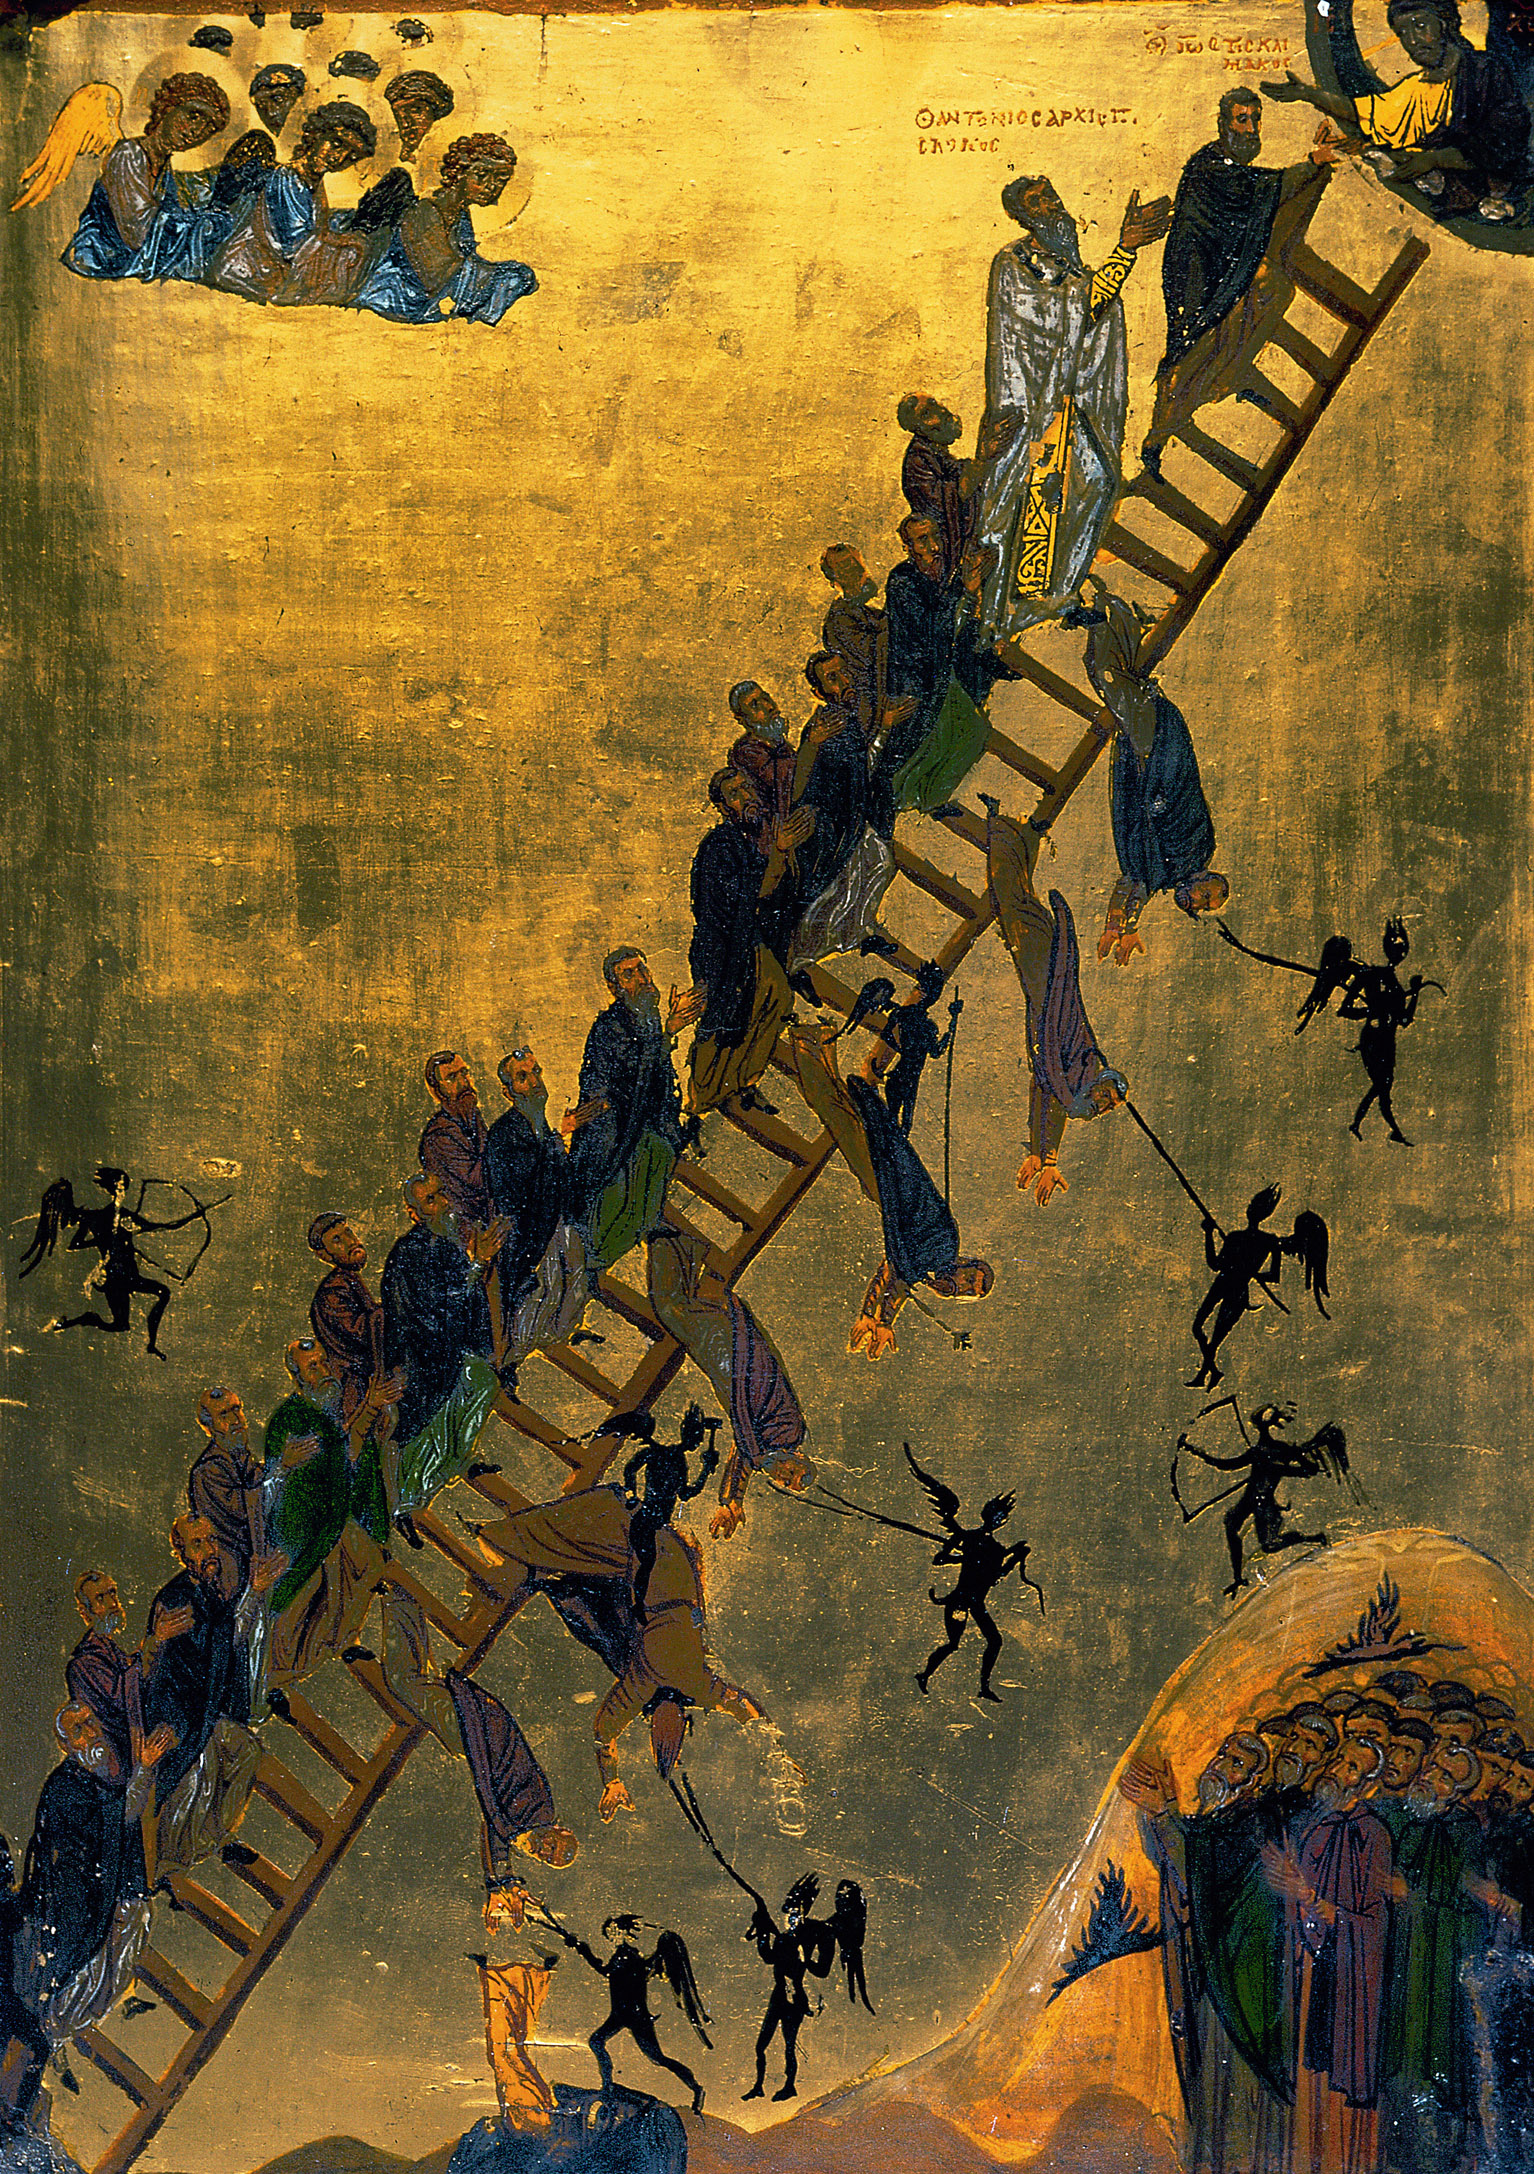 Monks climbing to heaven or being pulled to hell, twelfth-century illustration of The Ladder of Divine Ascent, a seventh-century guide to ascetic and mystical living, by St. John Climacus. Saint Catherine's Monastery, Mount Sinai, Egypt.